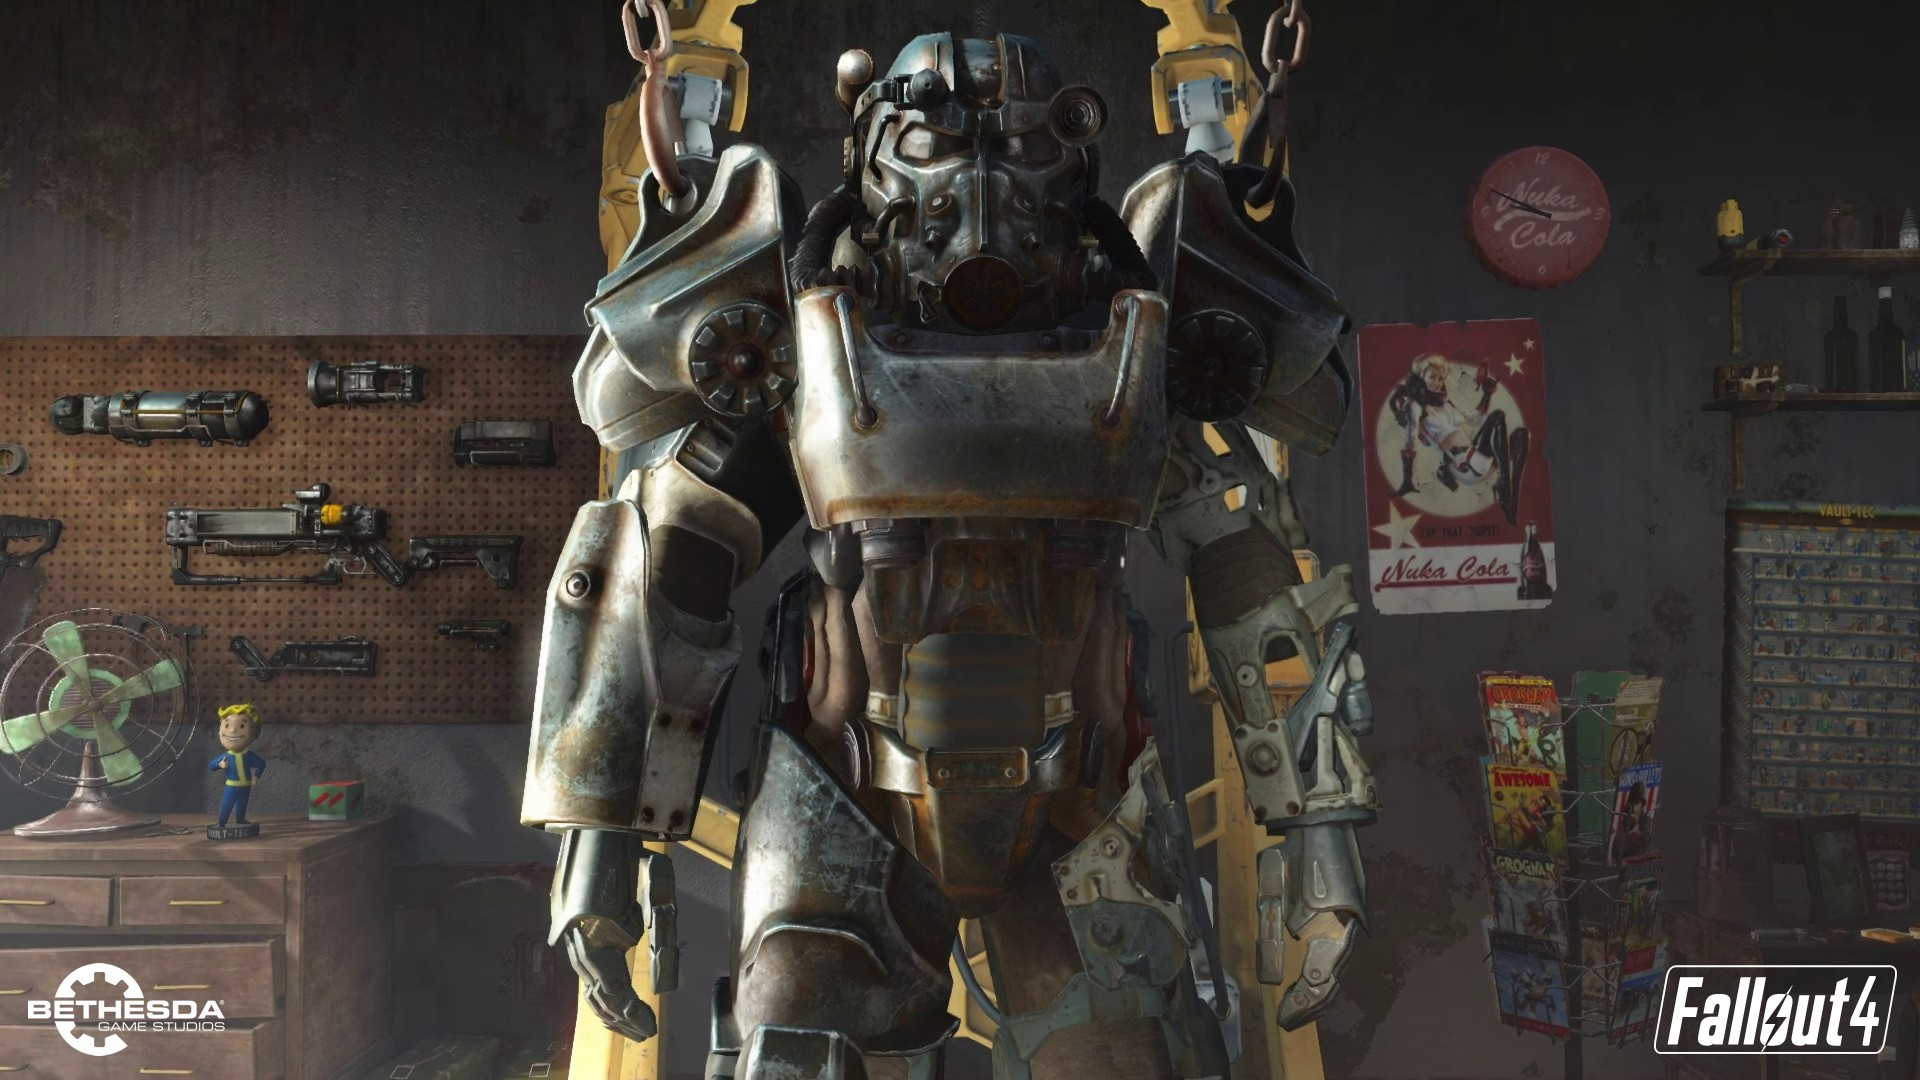 Fallout 4 Power Armor Wallpaper Download Free Cool High